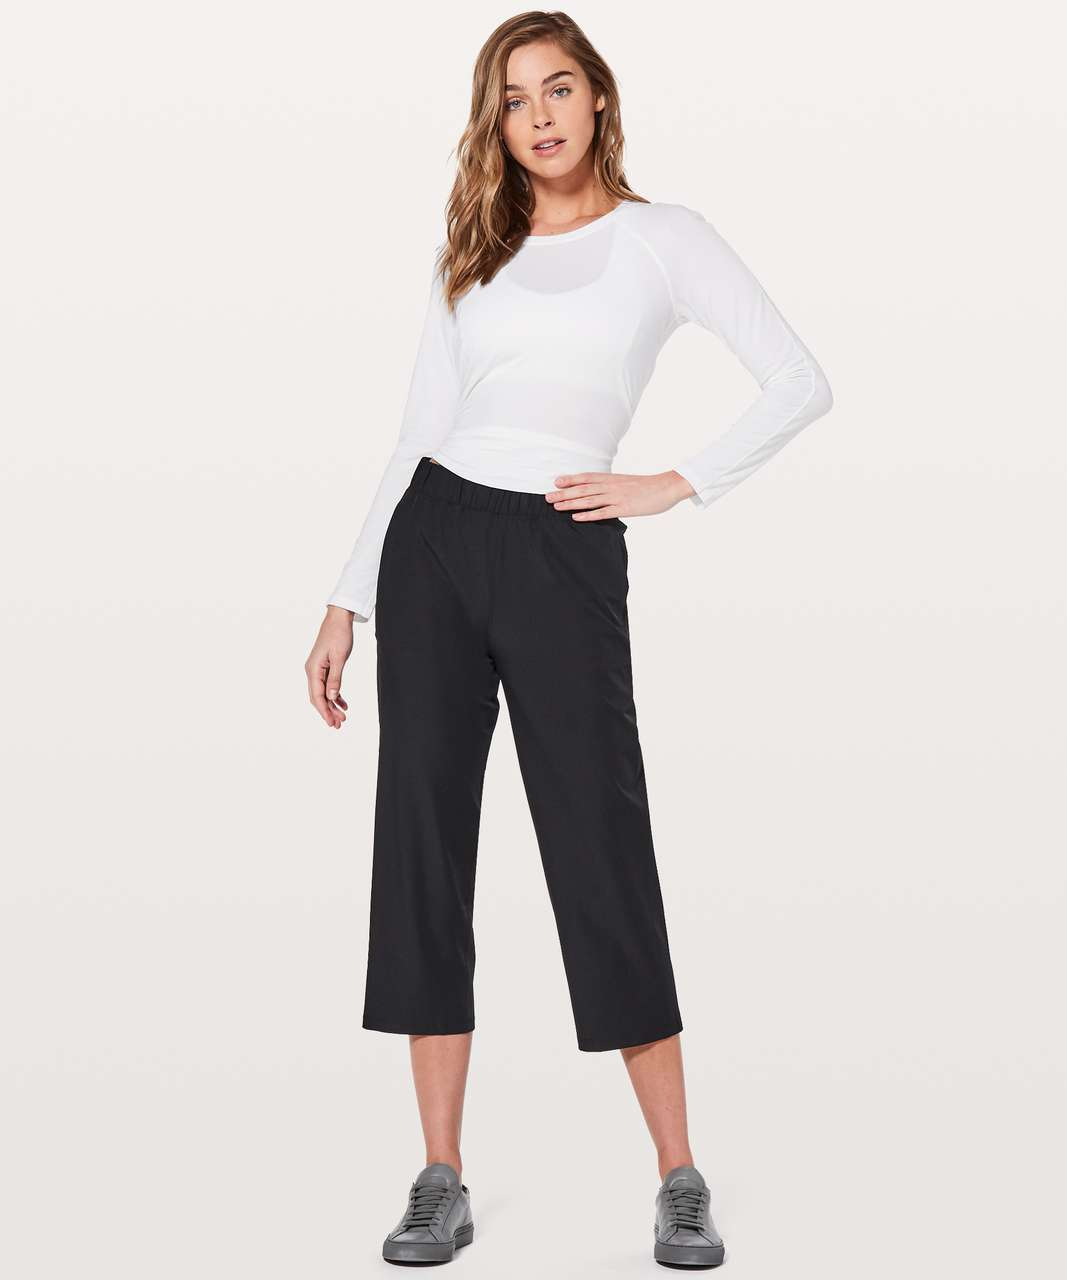 "Lululemon Next Move Crop *23"" - Black"